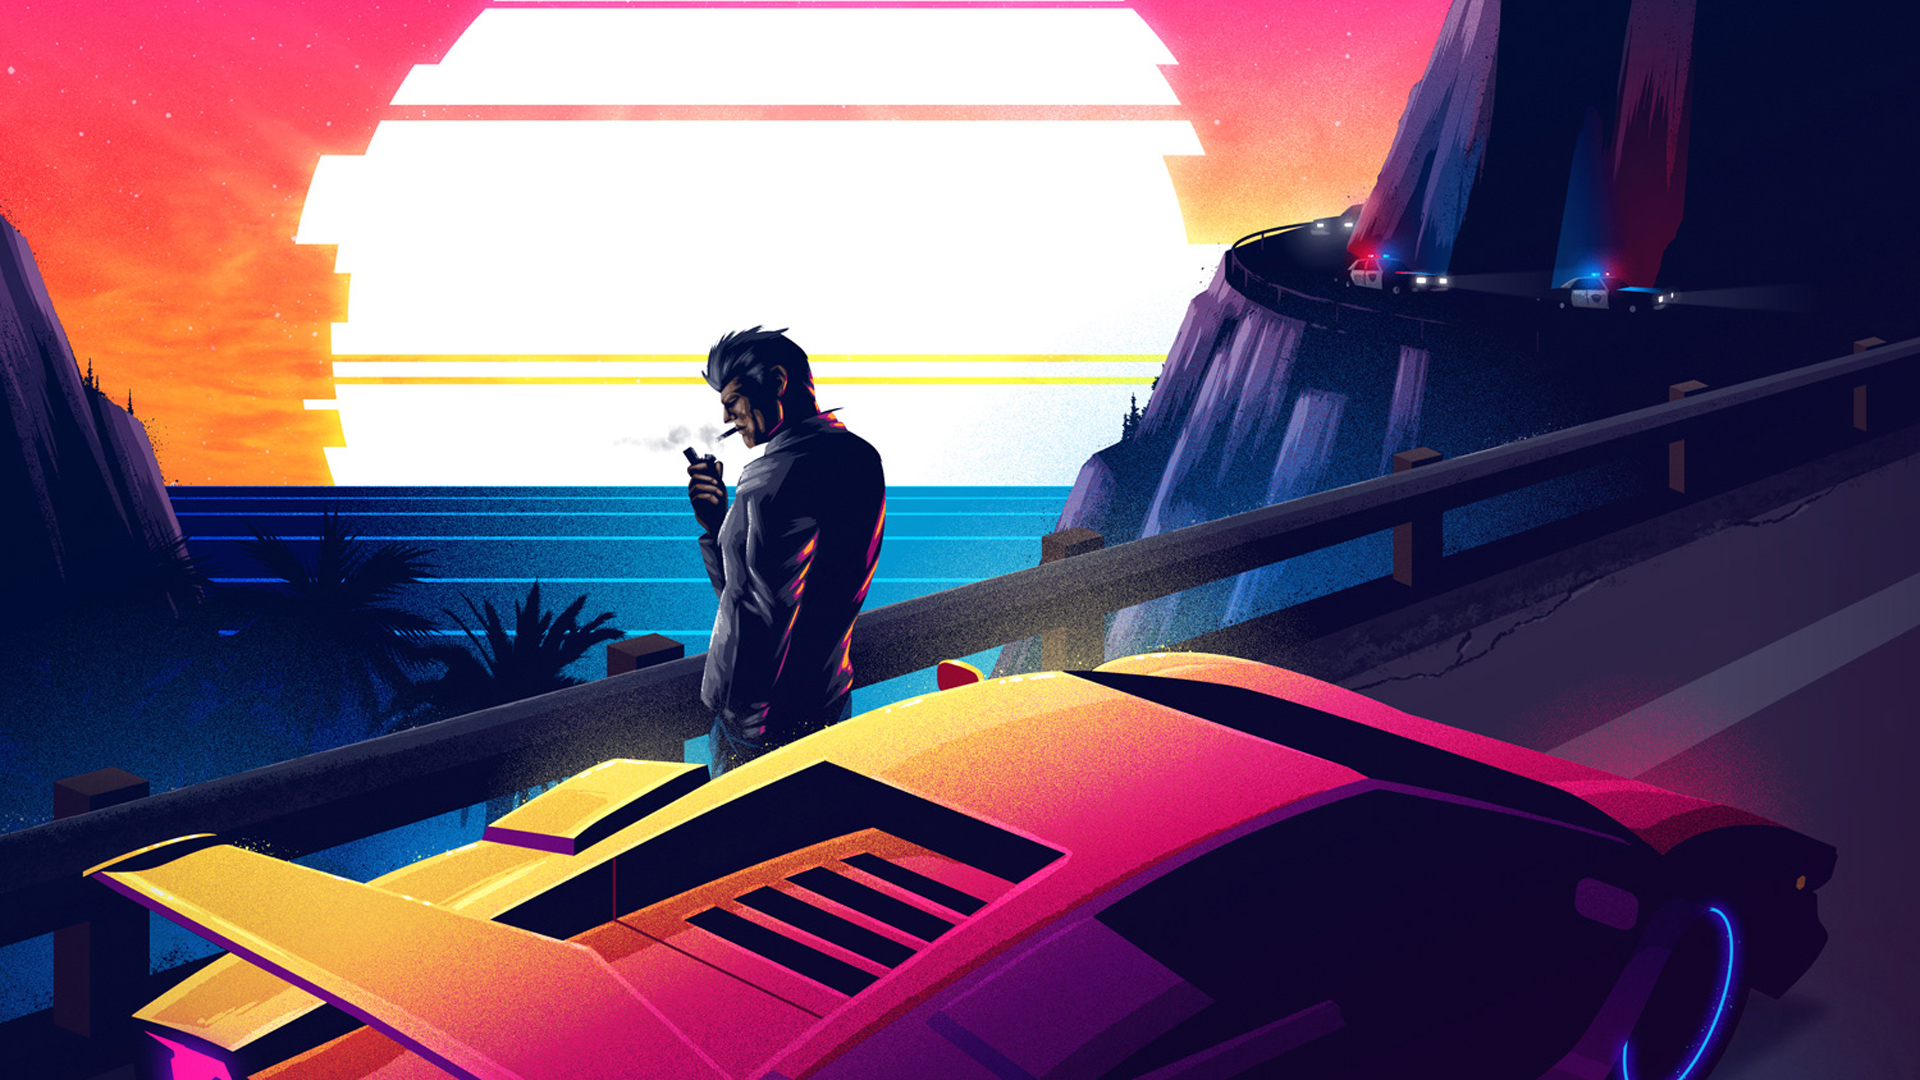 Retrowave Smoking Person Hd Artist 4k Wallpapers Images Backgrounds Photos And Pictures